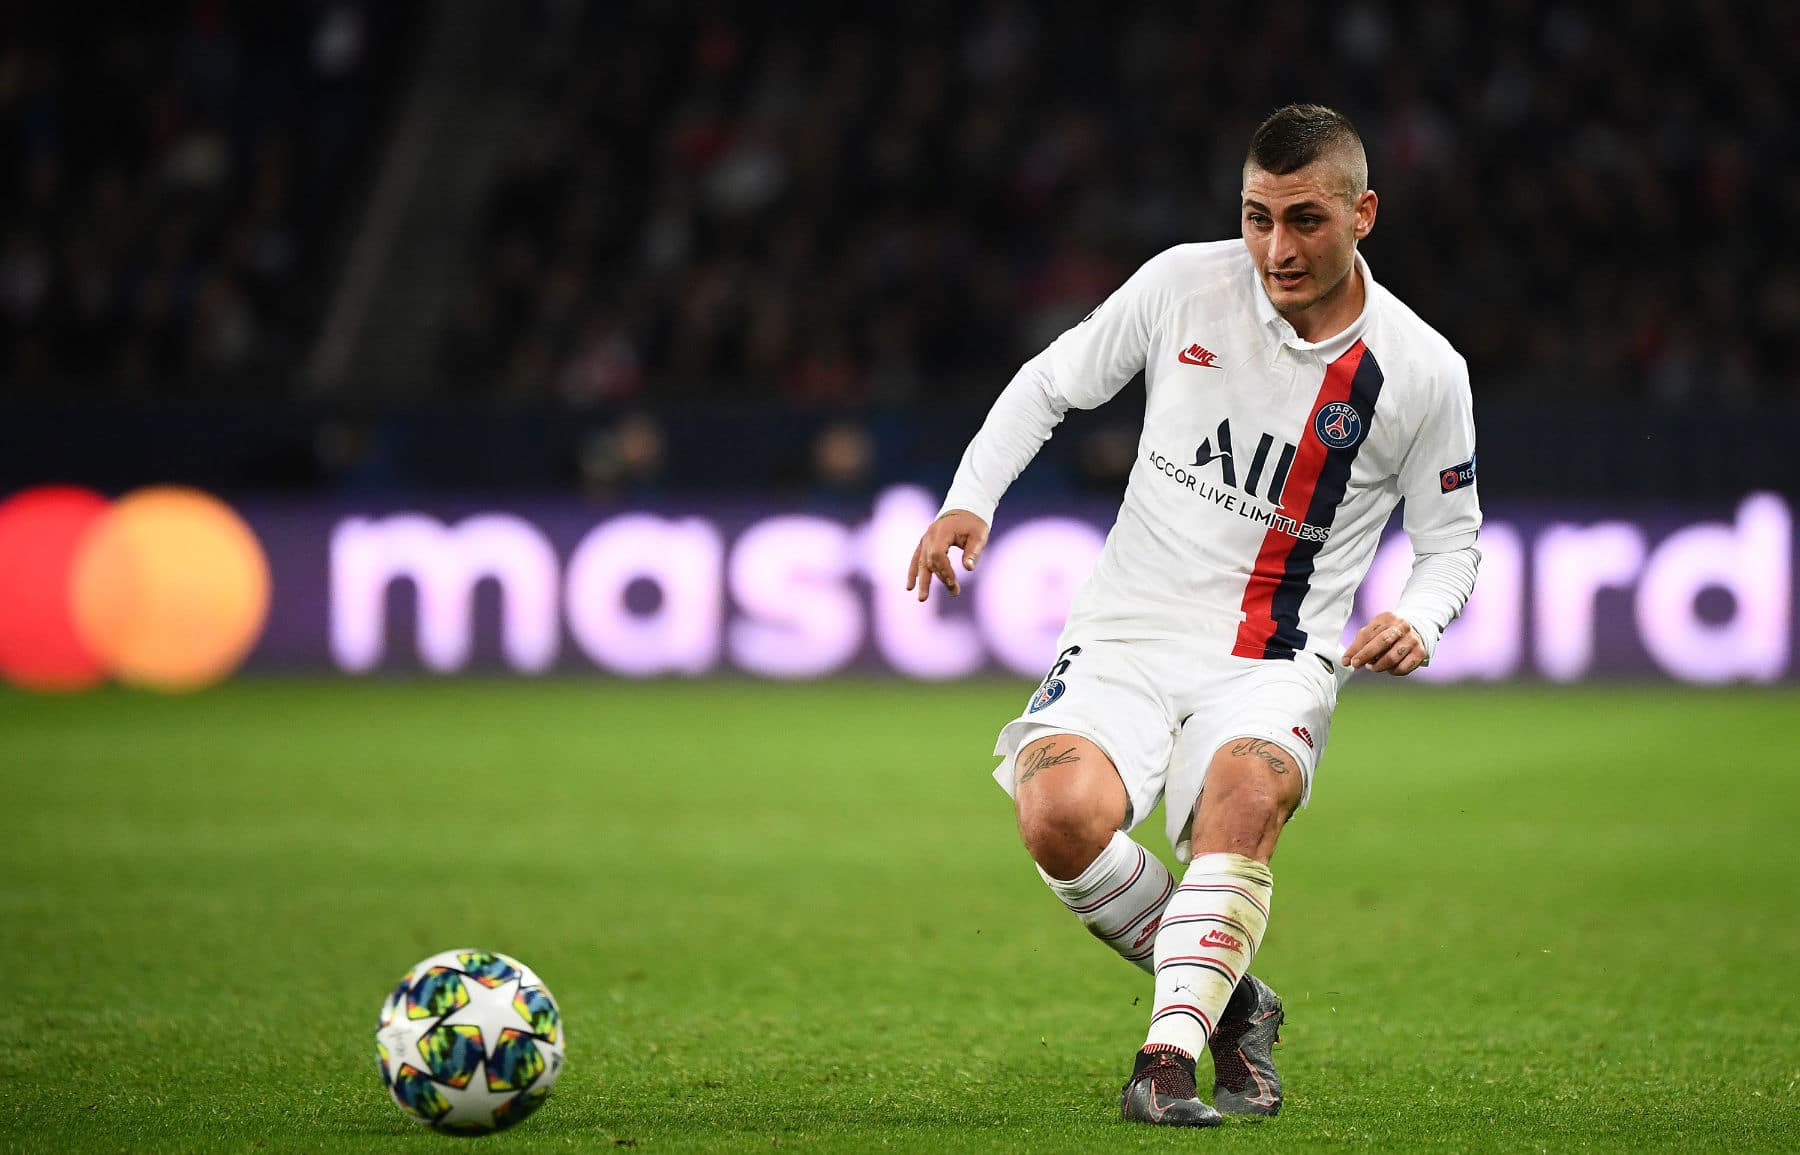 I Want To Play The Rest Of My Football Career At PSG -Verrati